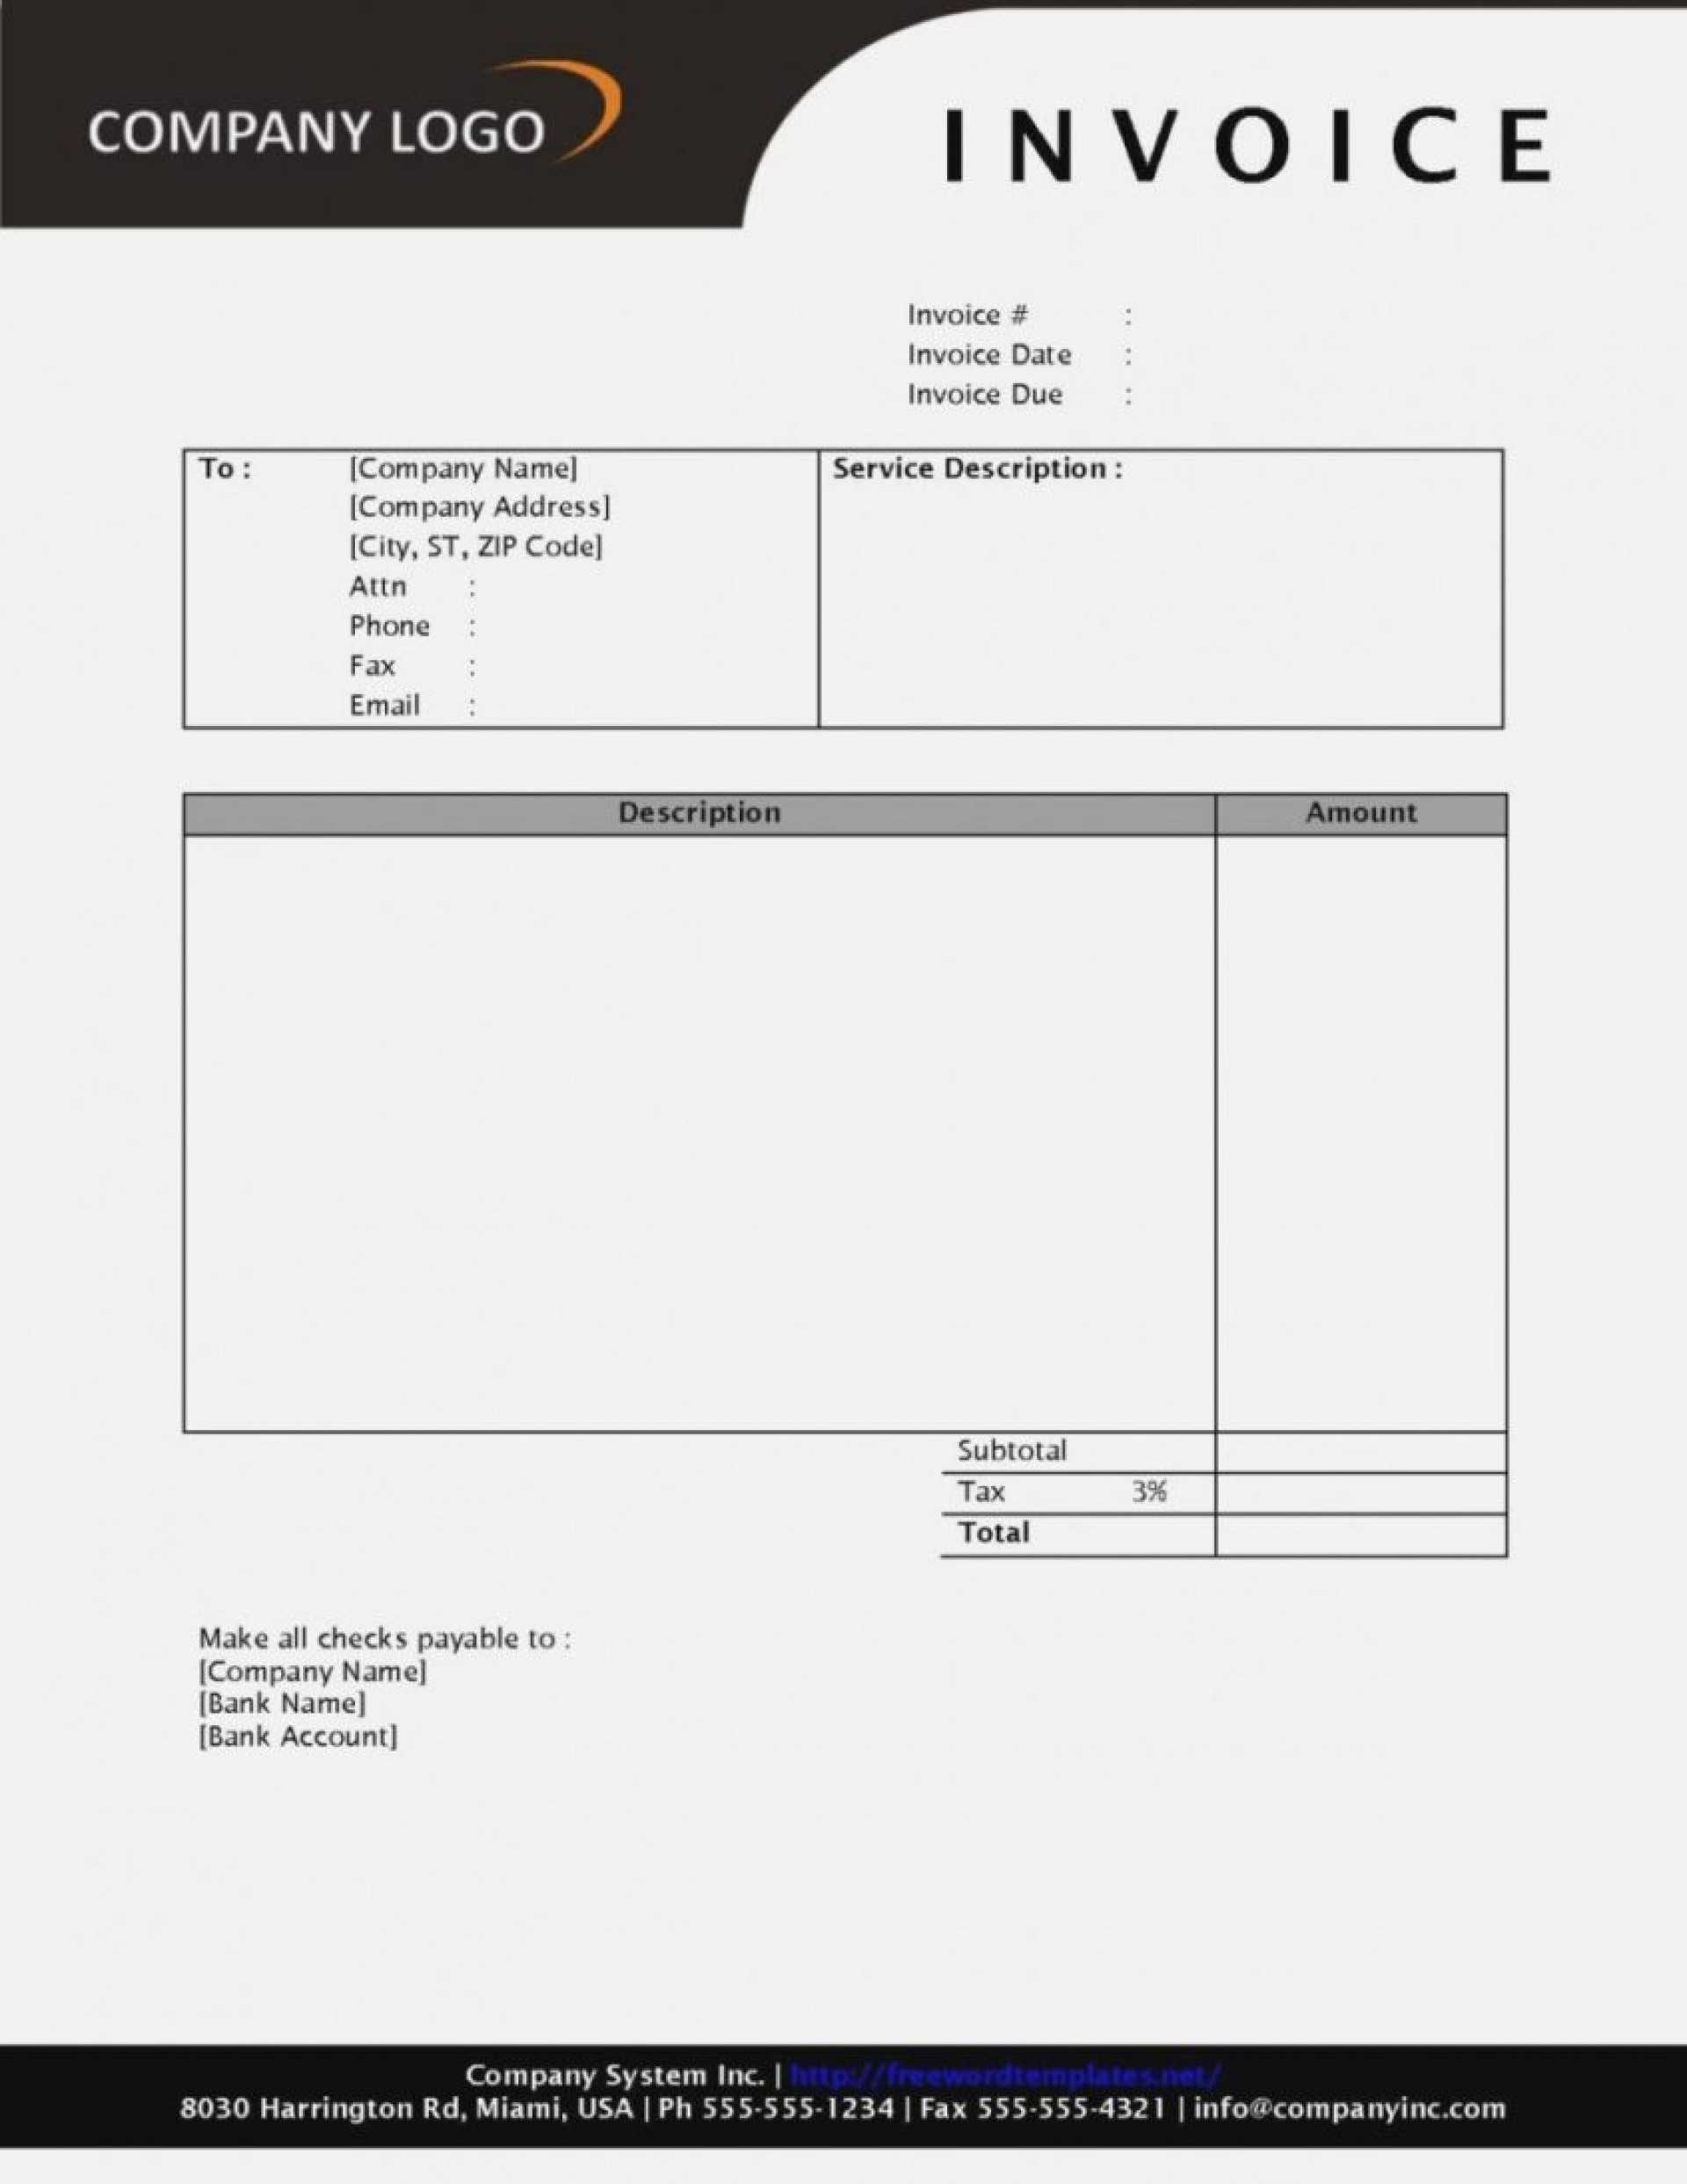 012 Invoice Template Word Free Unbelievable Ideas Proforma With Free Printable Invoice Template Microsoft Word